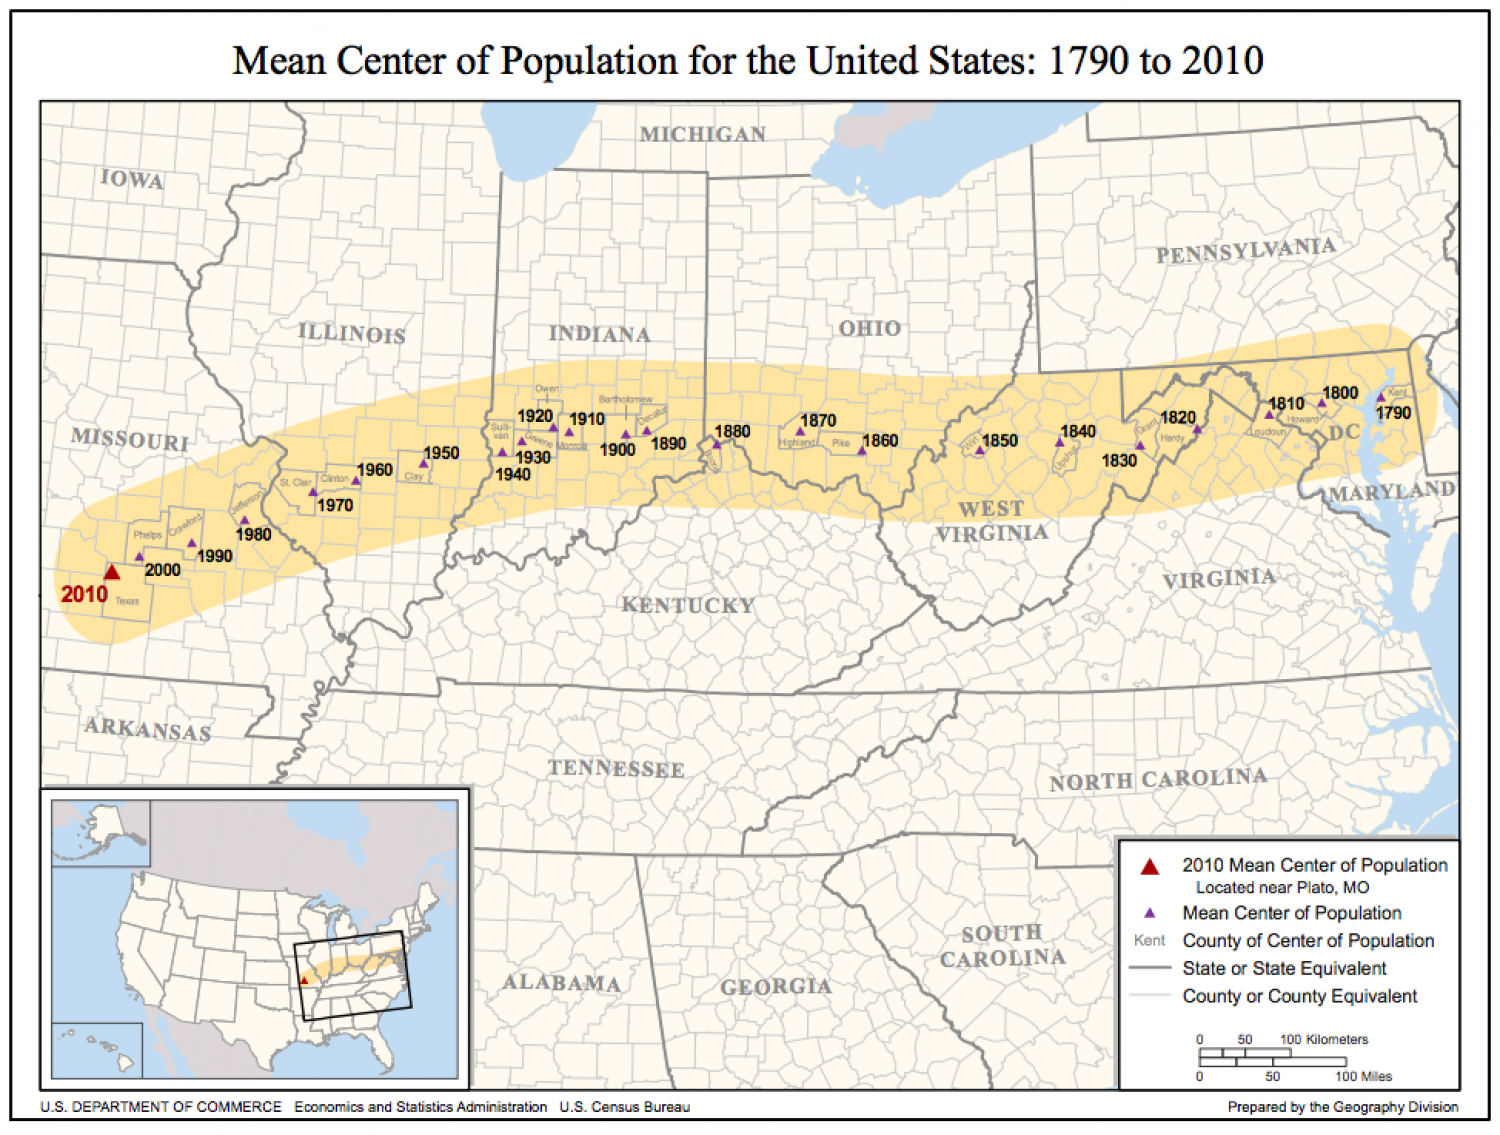 Mean Center of Population for the United States:  1790 to 2010 Infographic